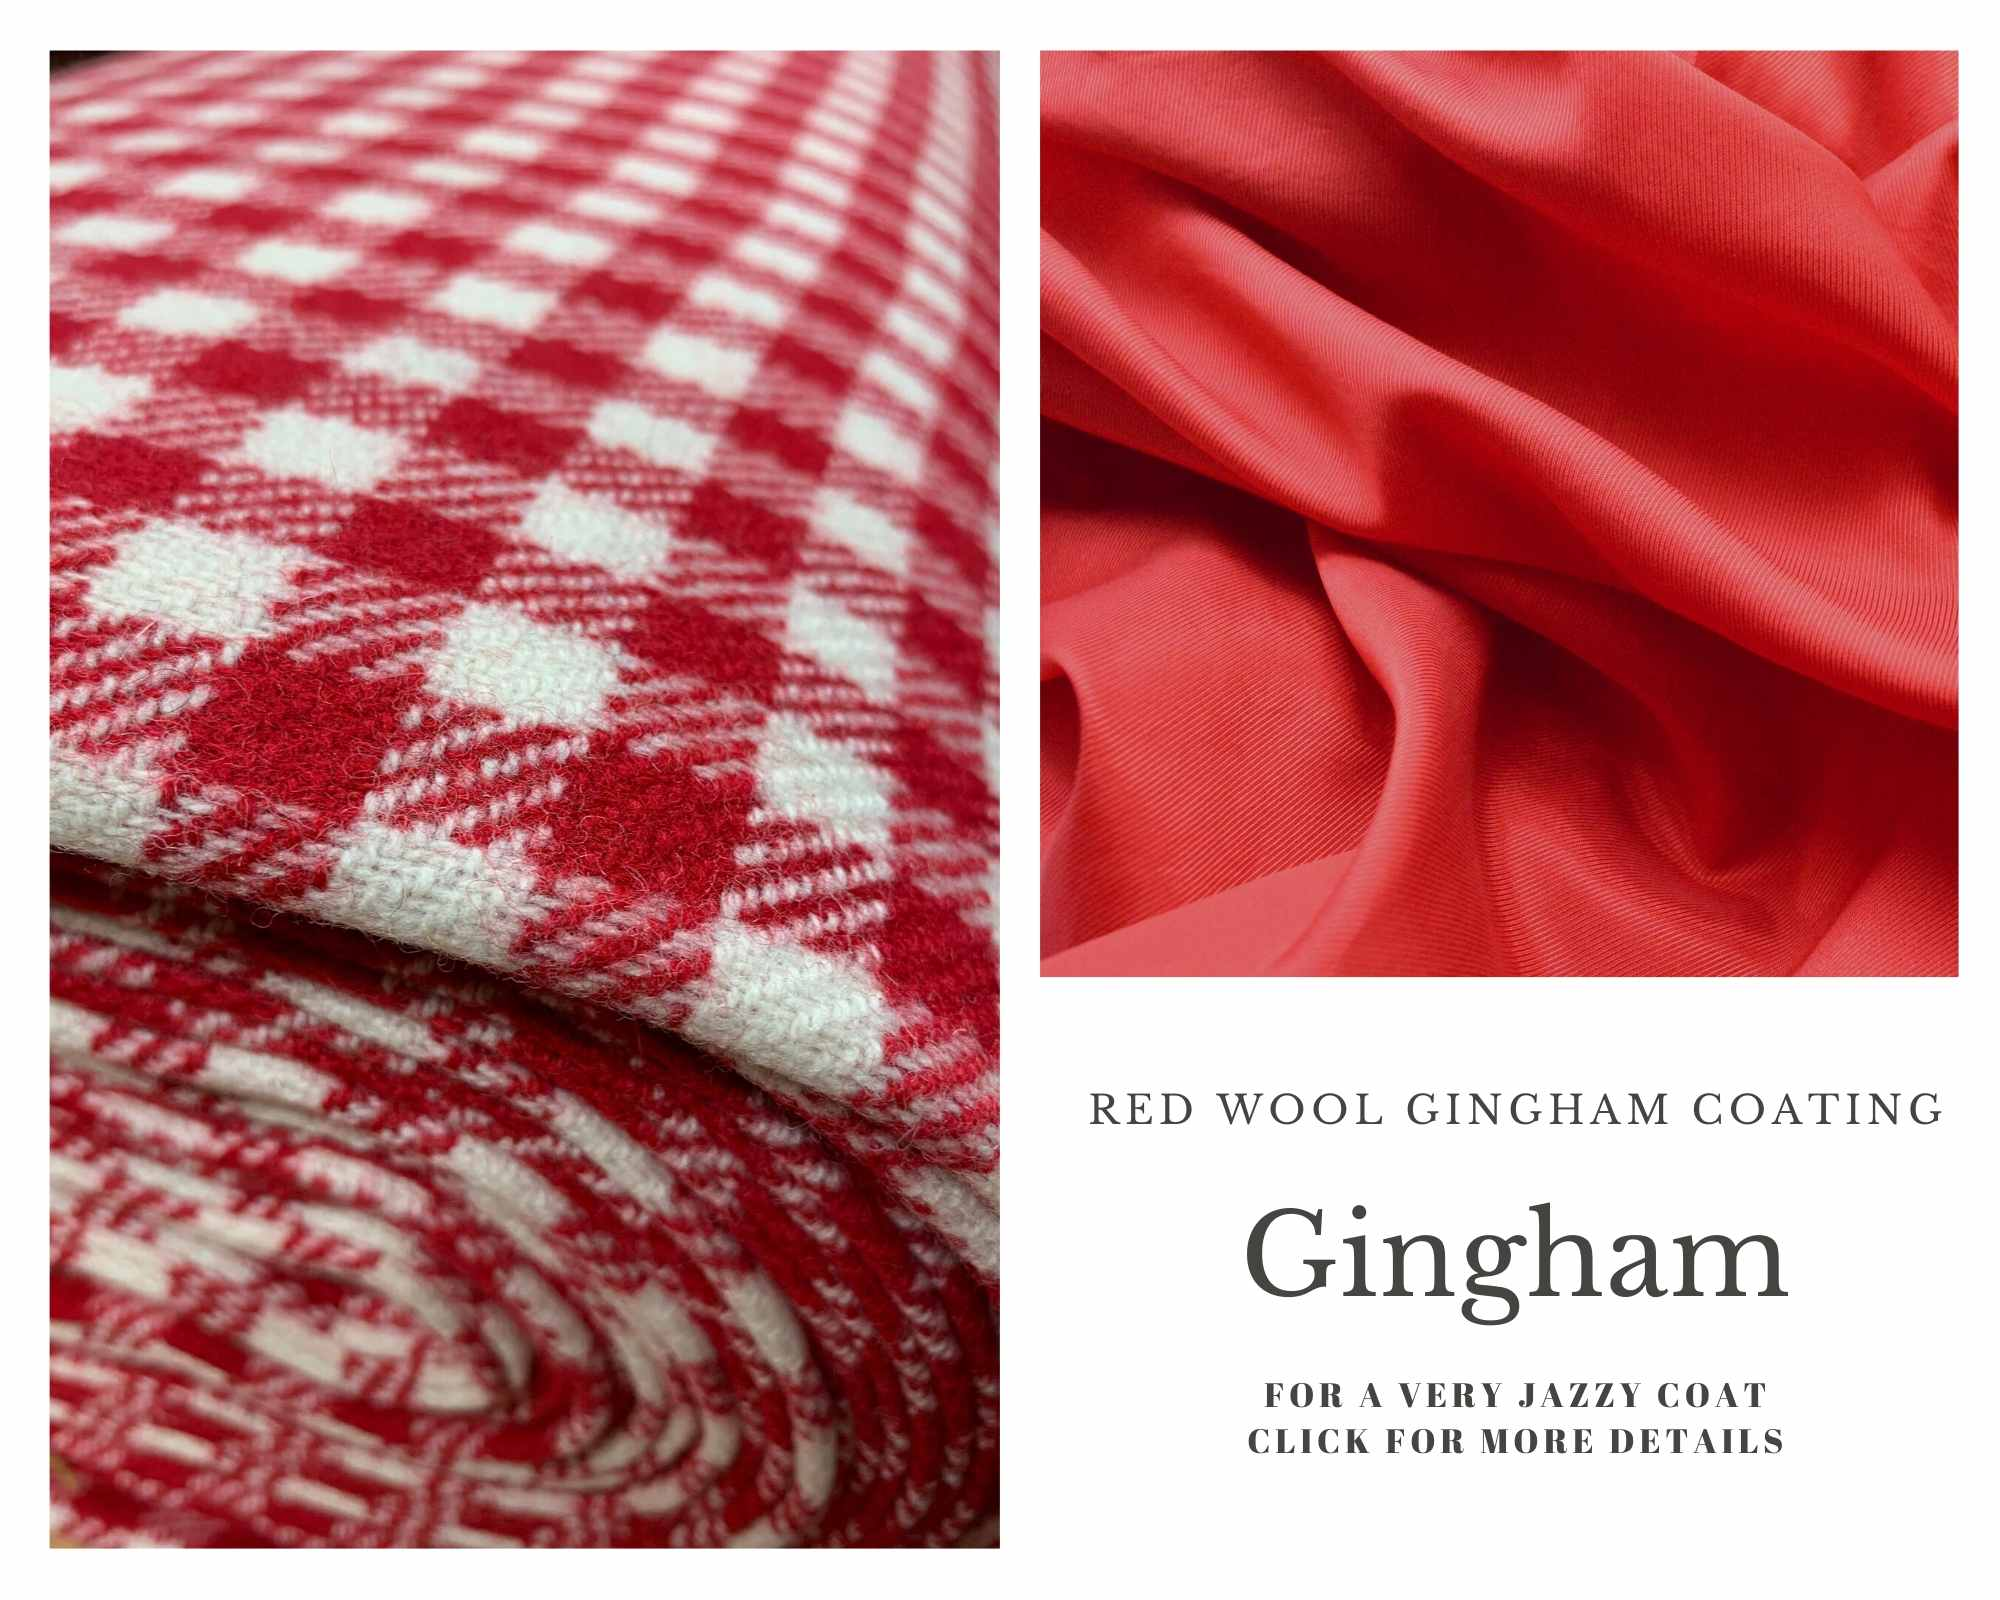 Coating Fabrics - Product red Gingham - red and white check